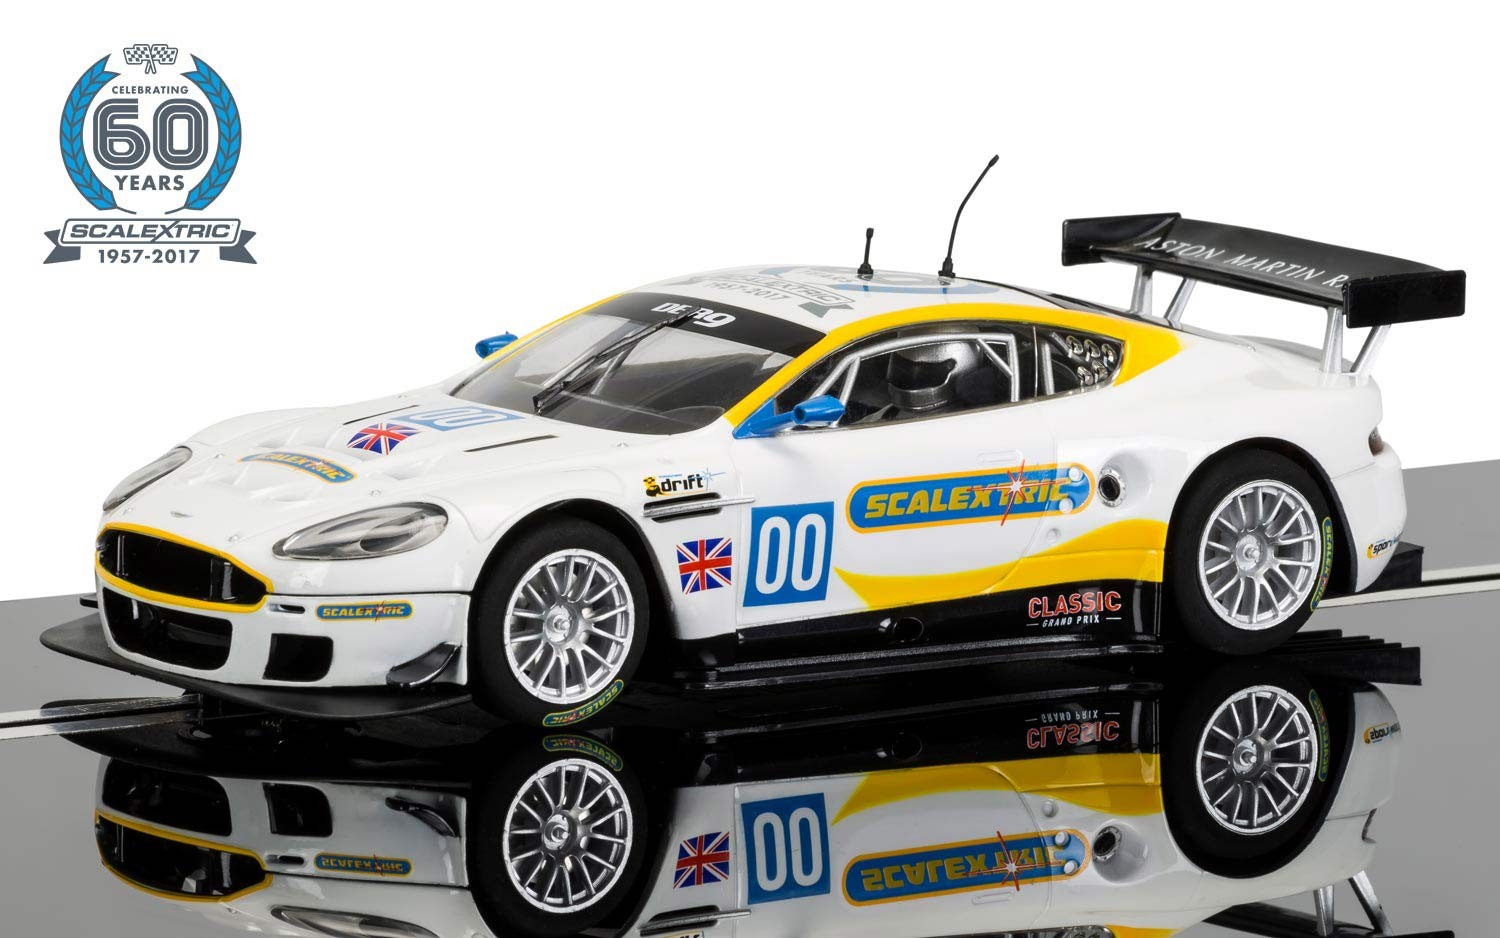 Scalextric: Aston Martin DBR9 Limited Edition 60th Anniversary Collection